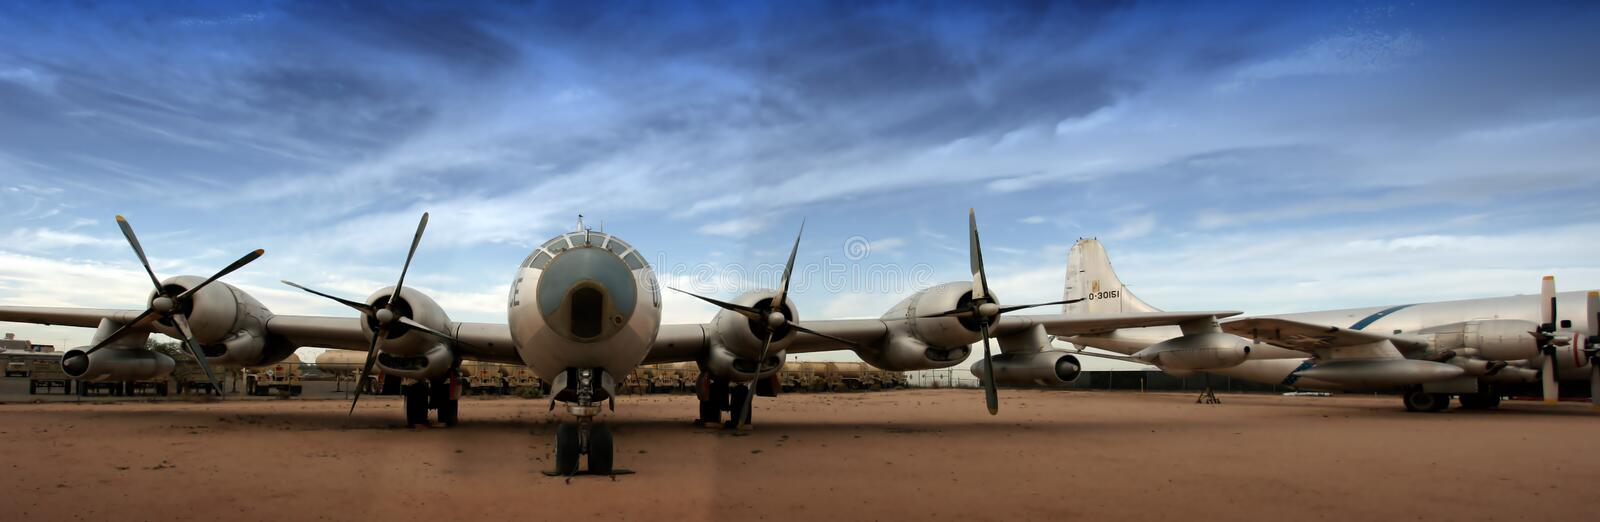 Boing B-29 Superfortress (großes Panorama) stockbild